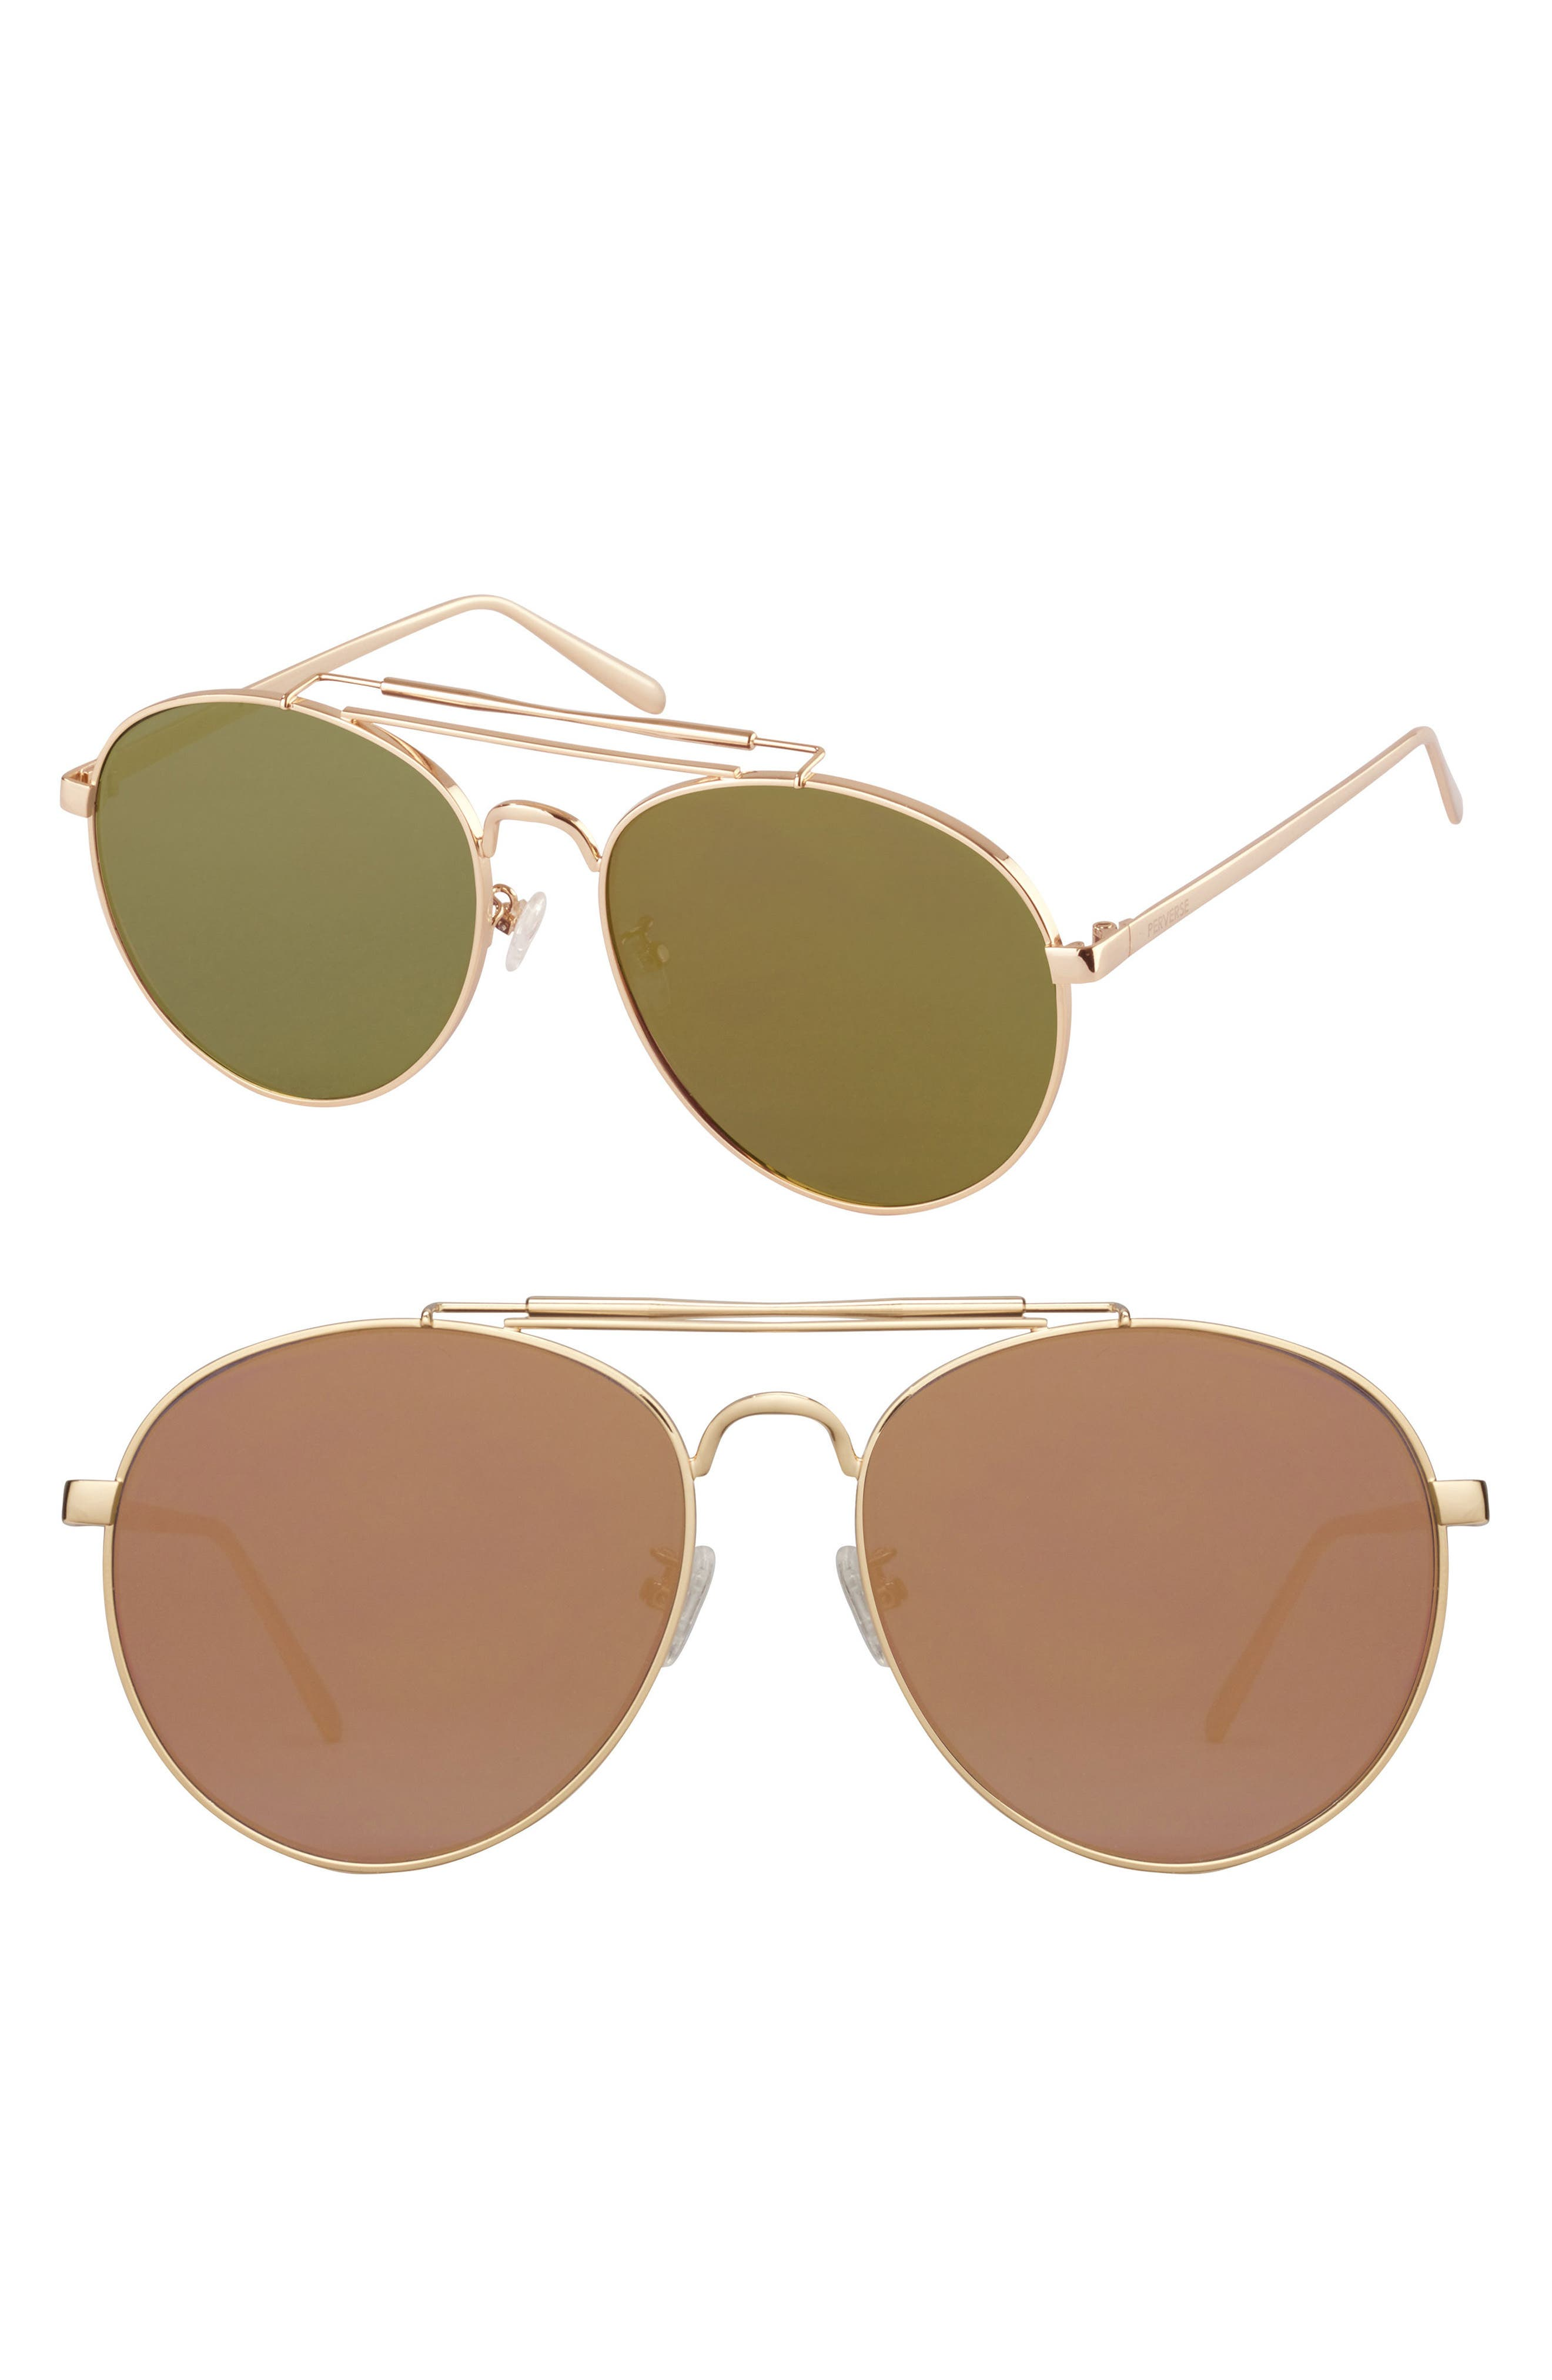 58mm Aviator Sunglasses,                         Main,                         color, Gold